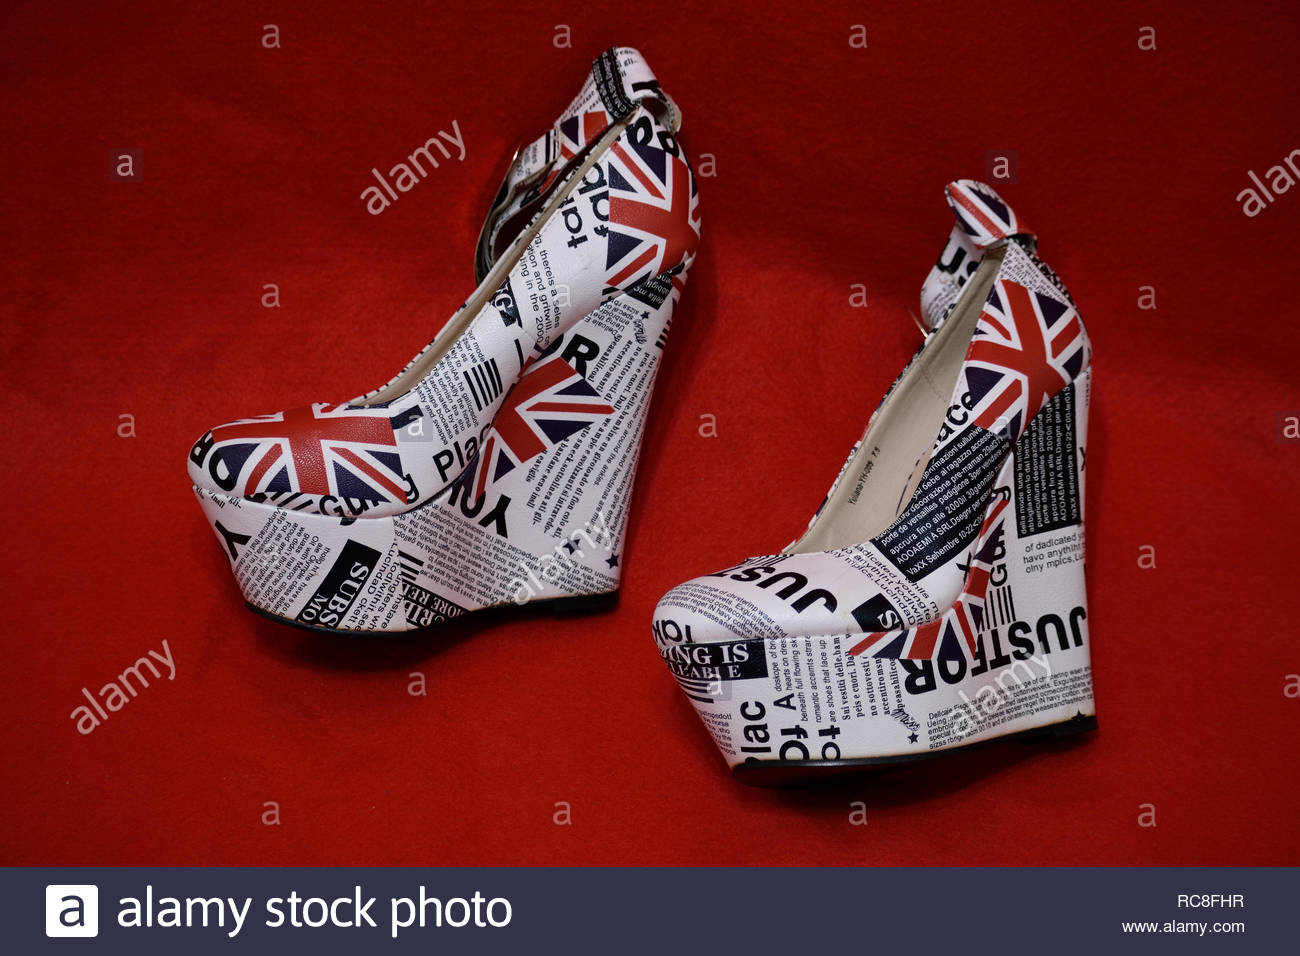 Platform Shoes. High 6 inch wedge heels. Womens high heel platform shoes. Platform heels with British Union Jack. Very tall high heels. Six inch heels - Stock Image